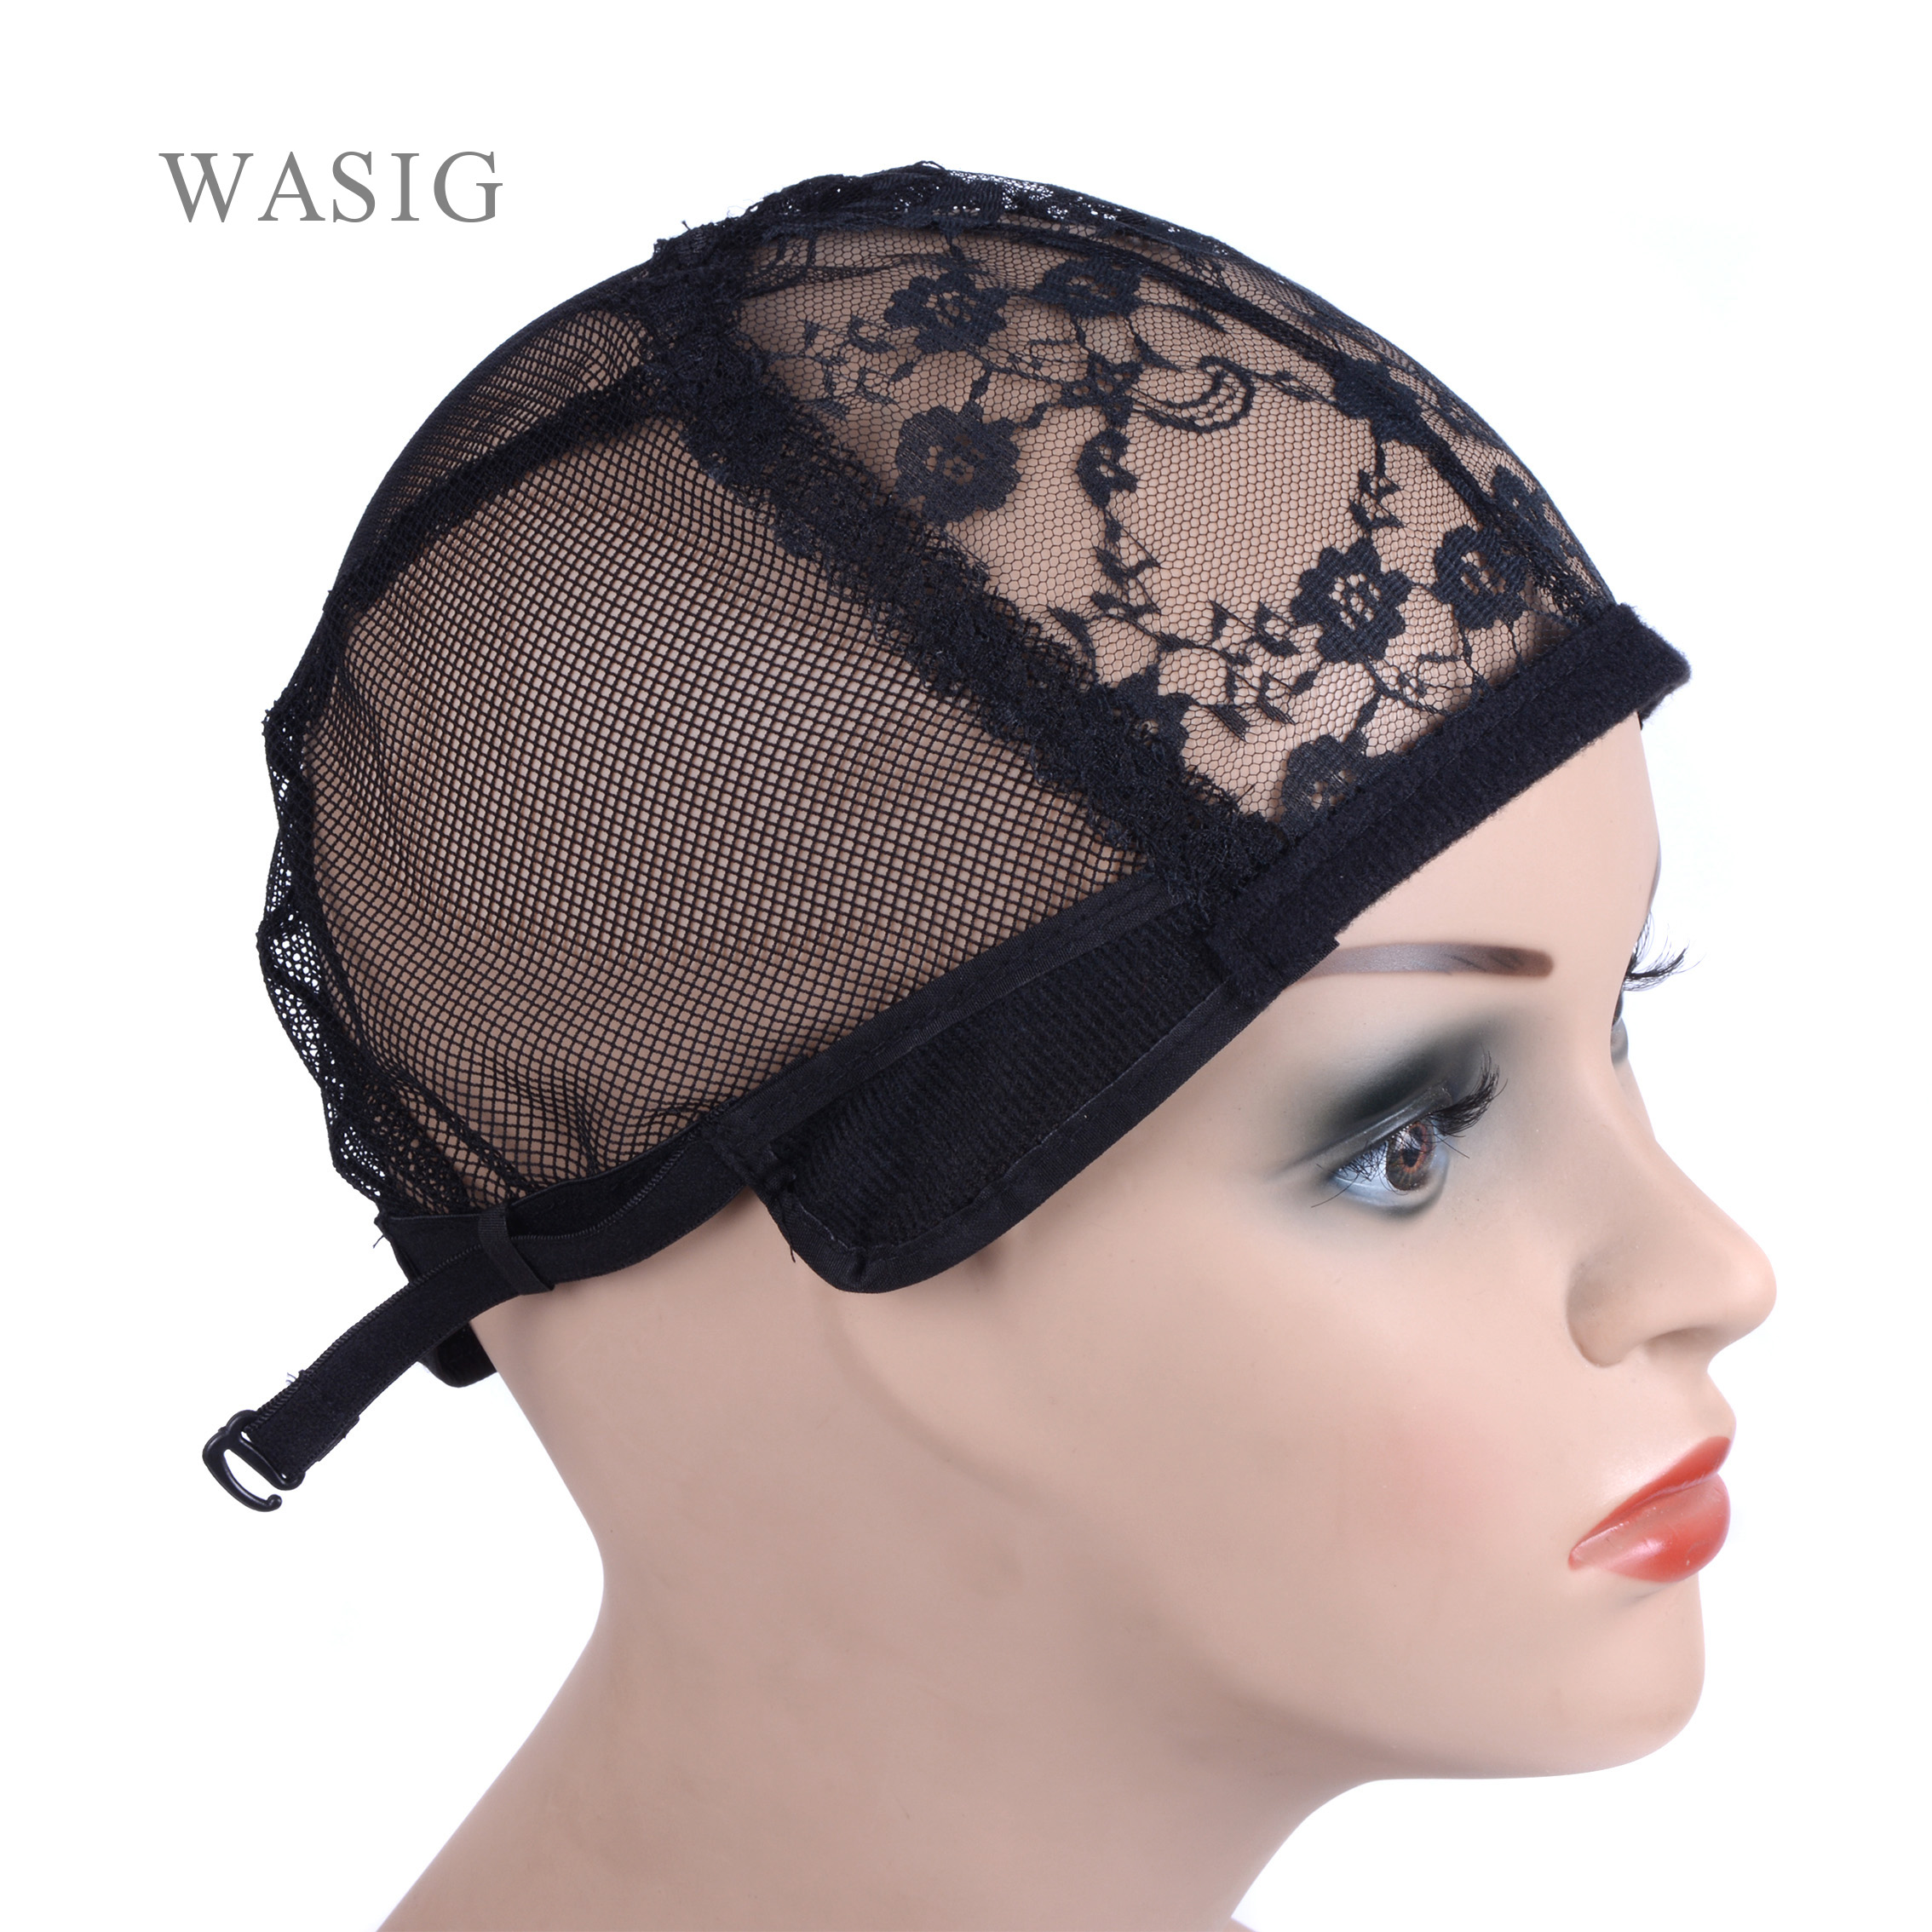 Black 5pcs  Wig Cap For Making Wigs With Adjustable Strap On The Back Weaving Cap  Glueless Wig Caps Good Quality Hair Net Black